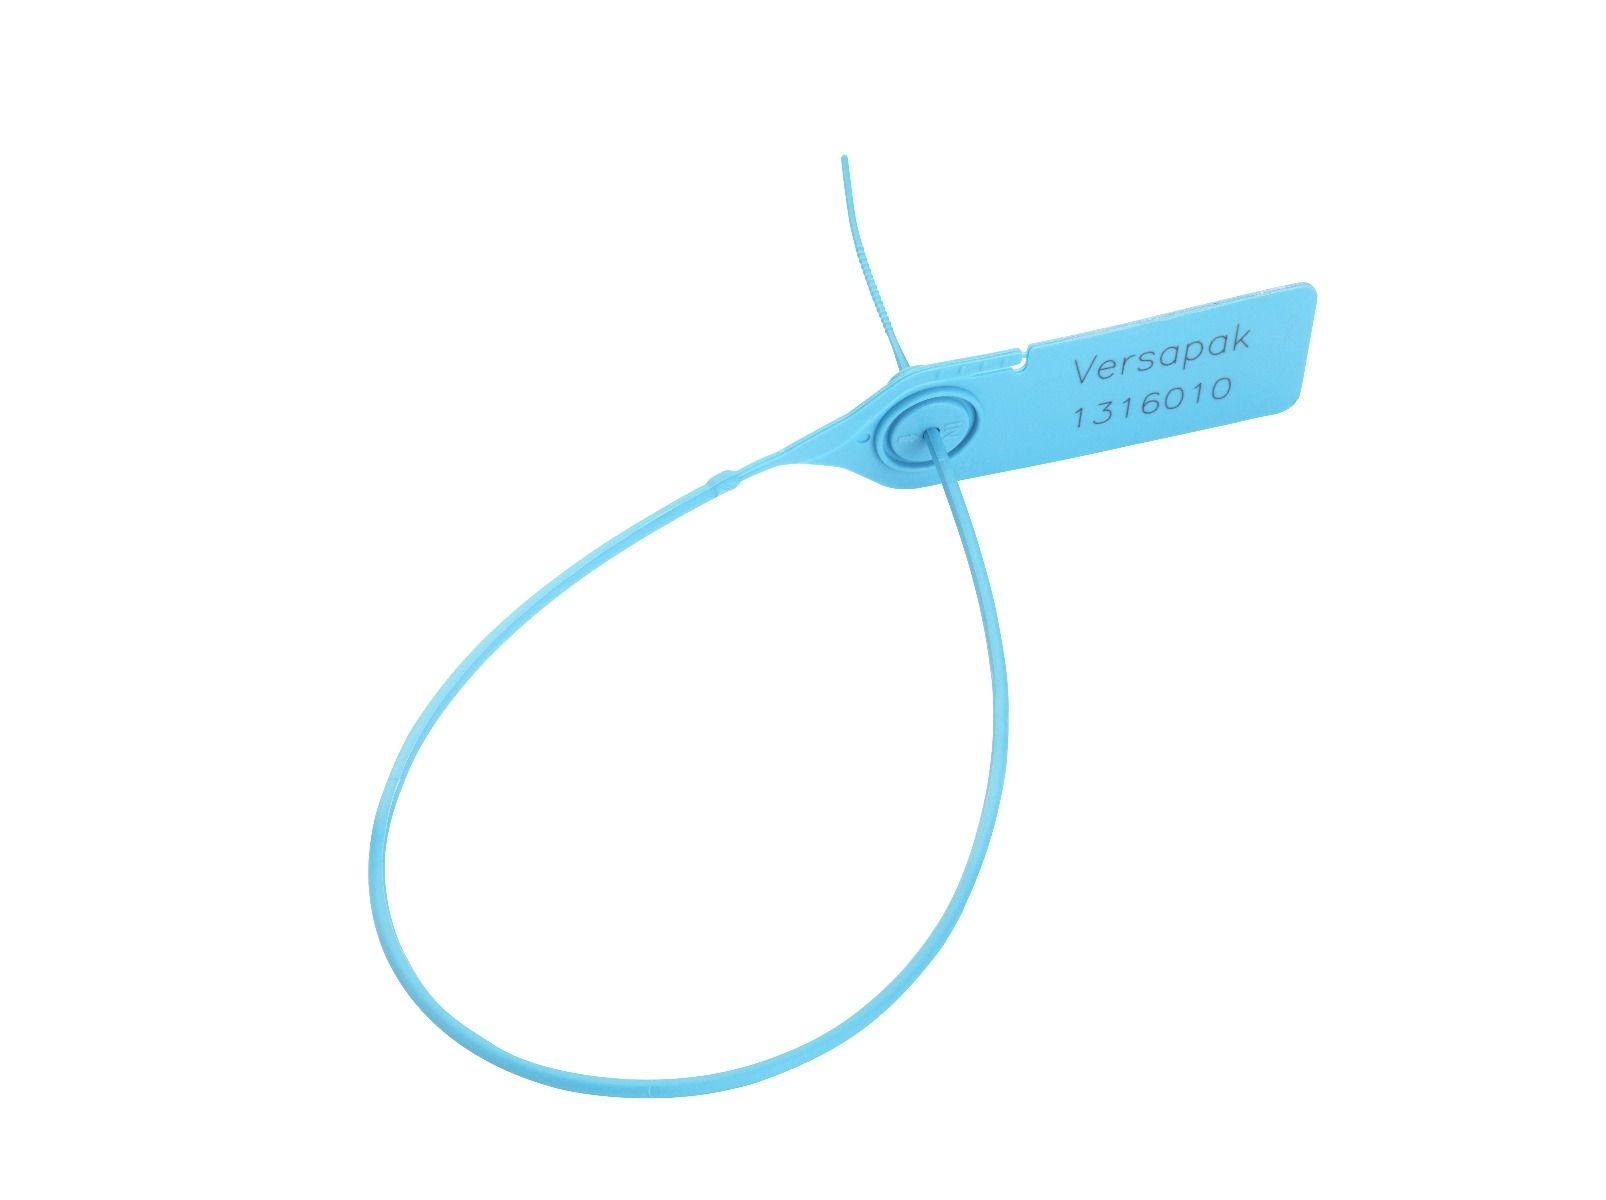 Plastic 200mm Tear Off Security Seal - Smooth Strap Metal Jaw